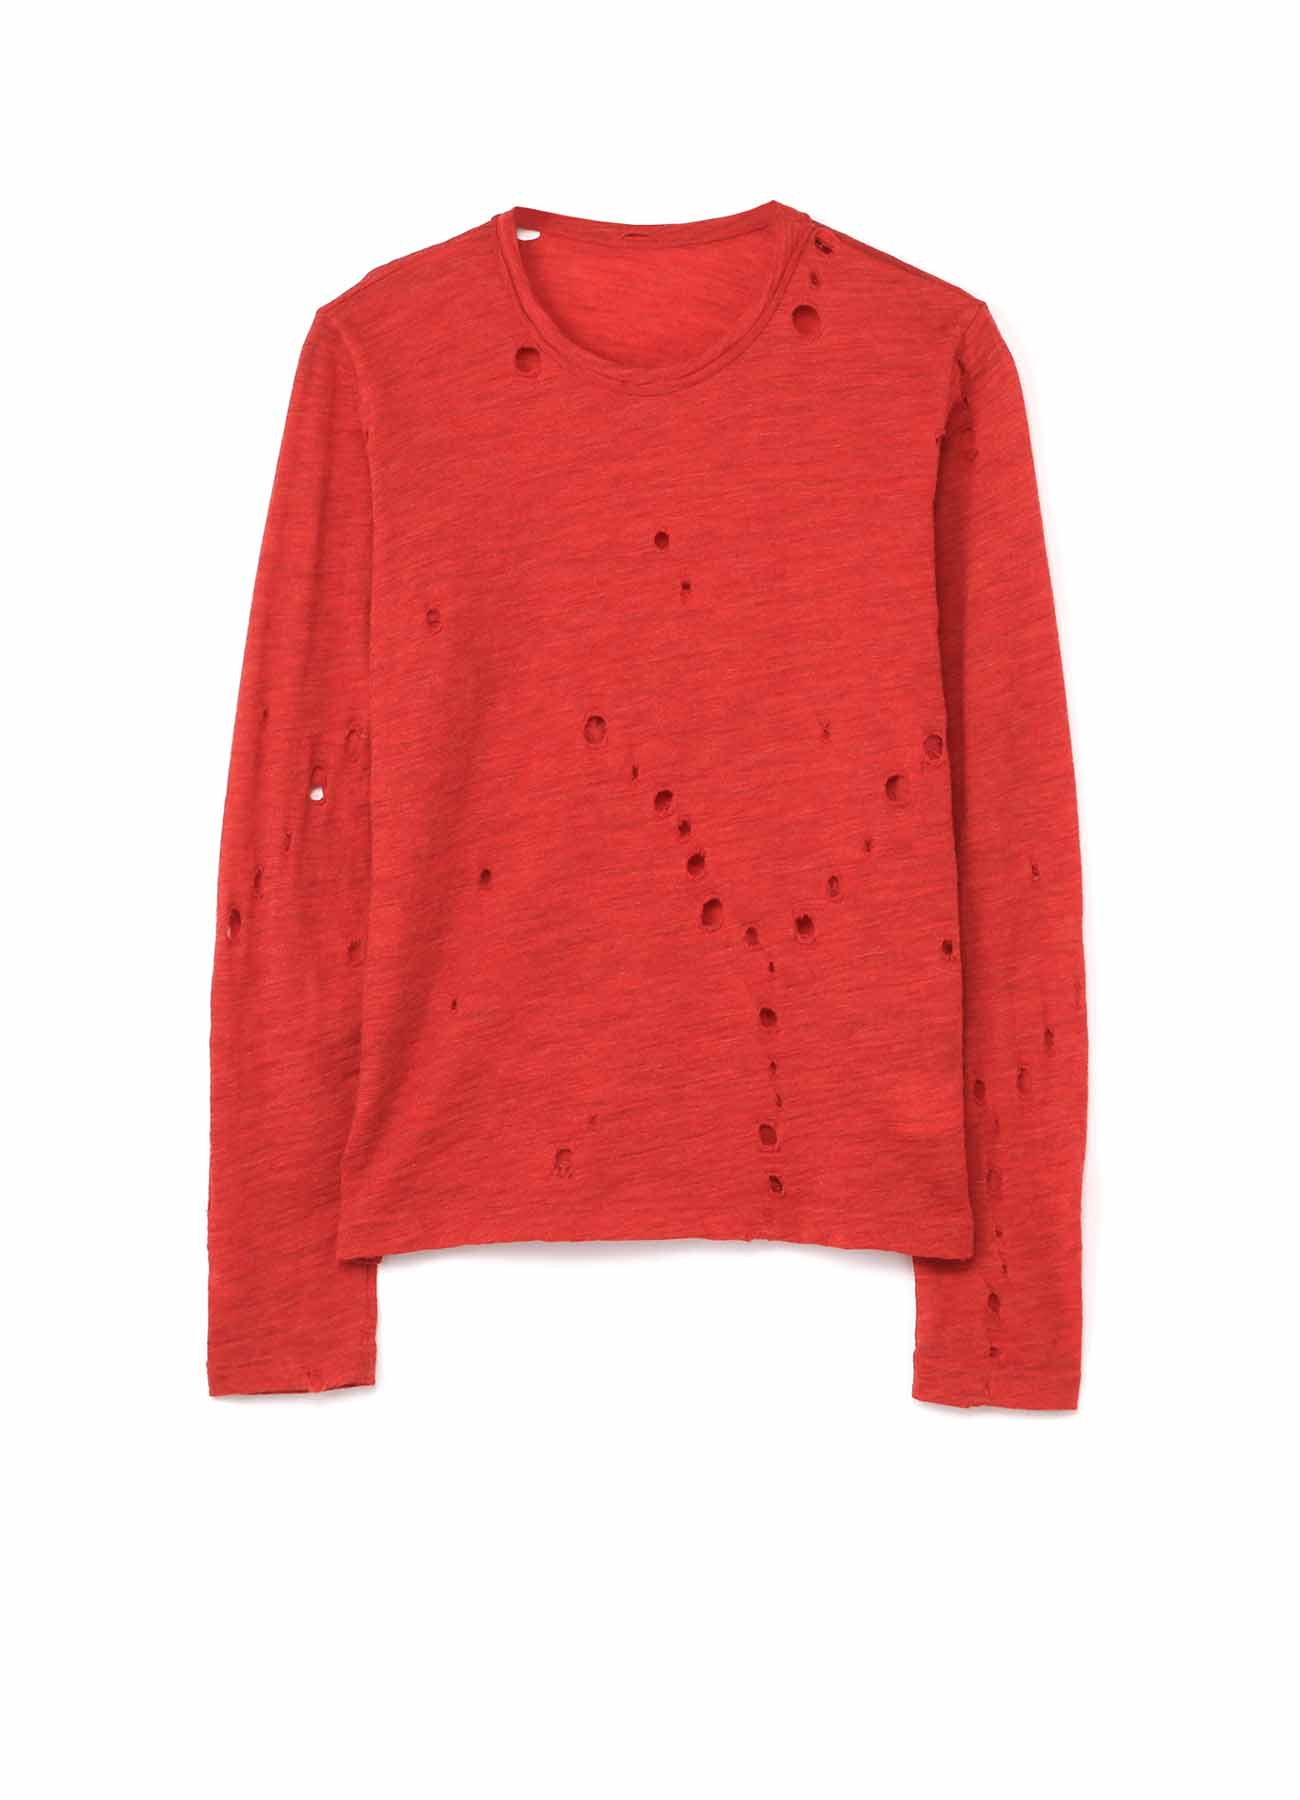 PERFORATED Y PRINT PLAIN STICH ROUND NECK LONG SLEEVE